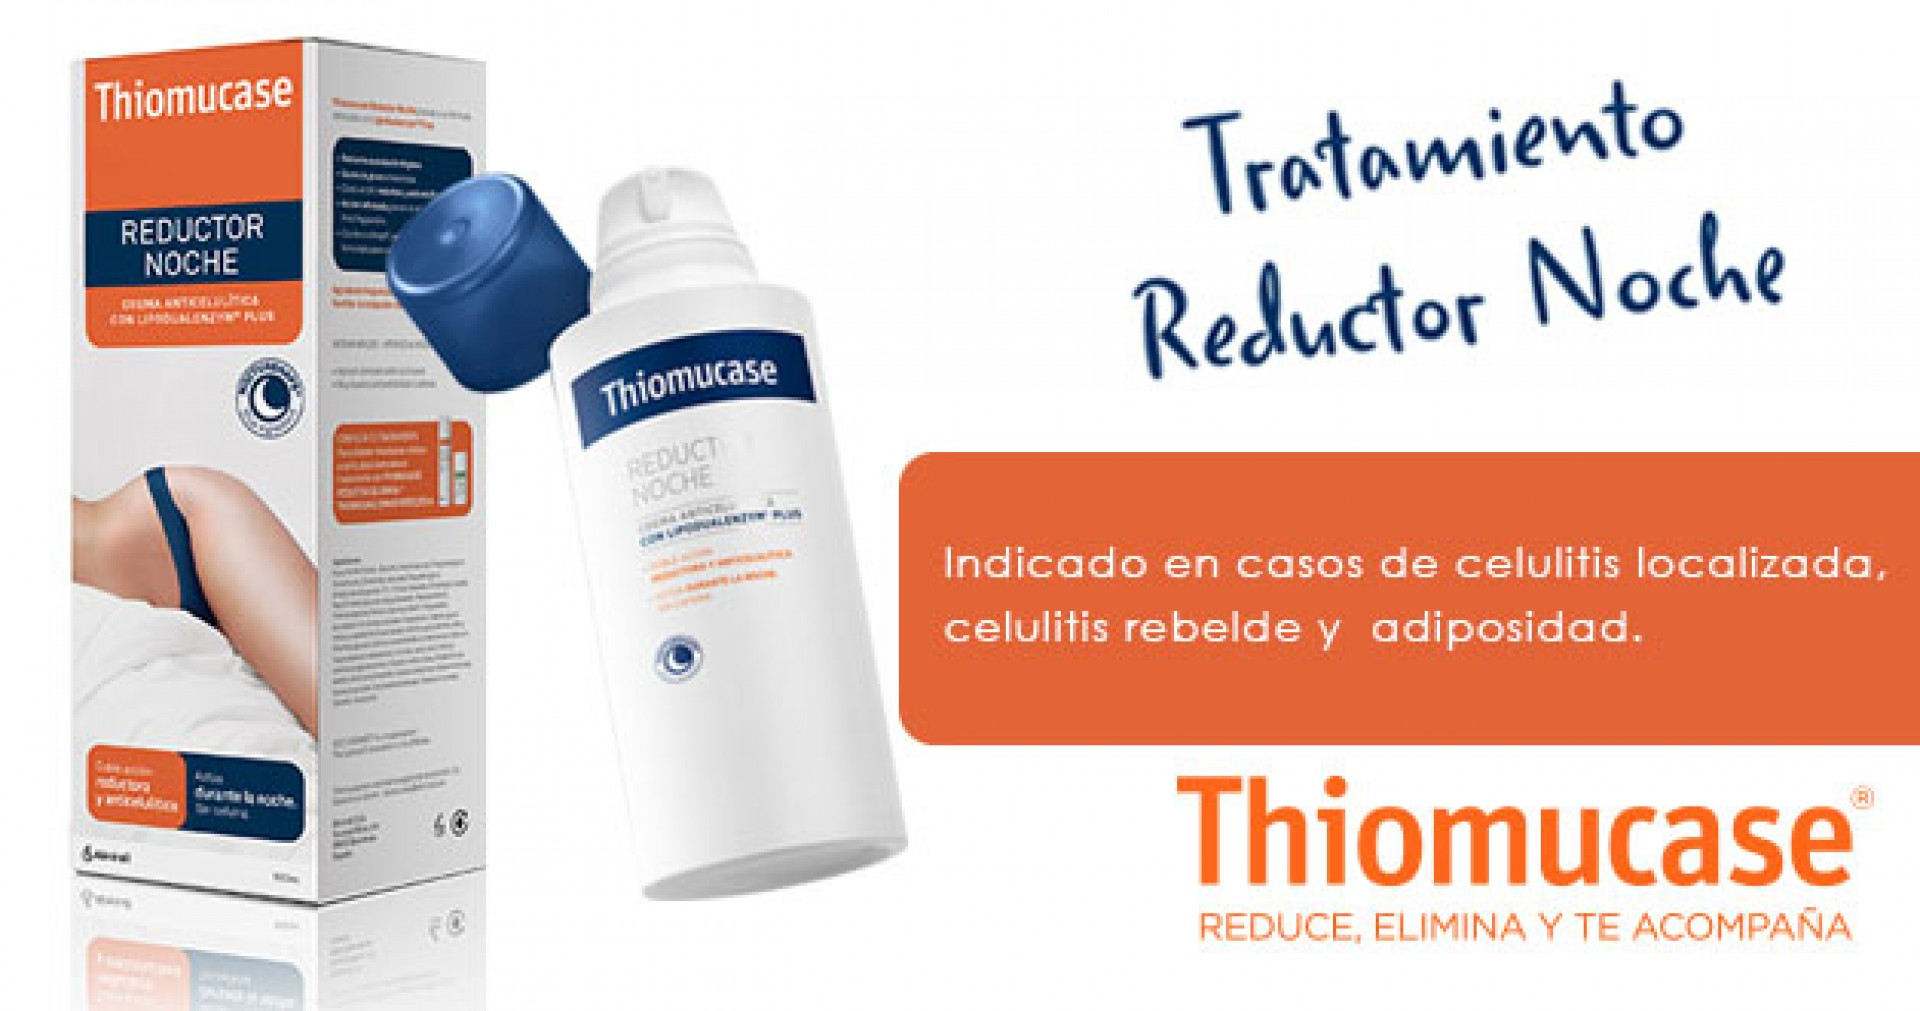 Reductor anticelulítico noche Thiomucase